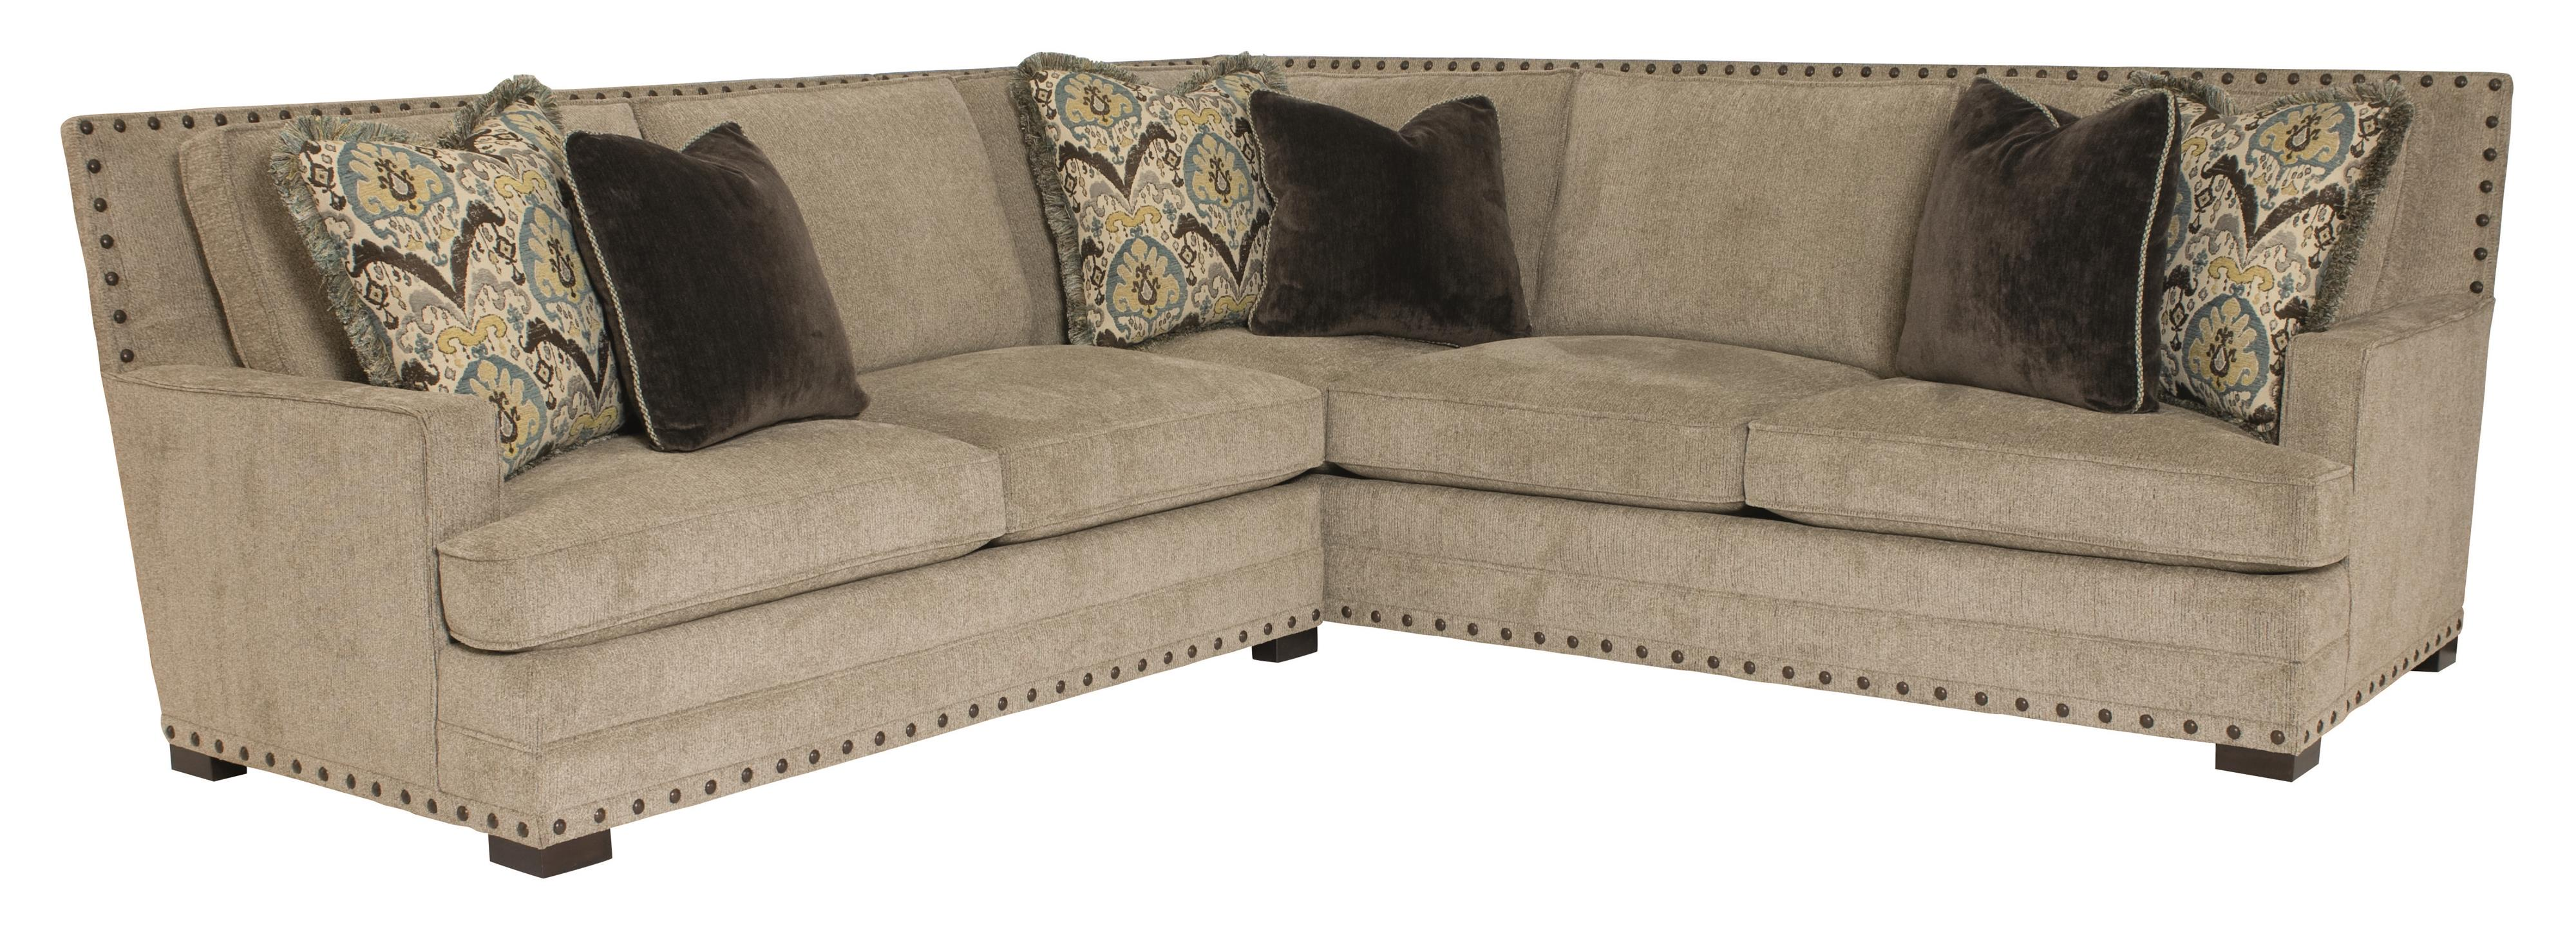 Cantor  Sectional Sofa by Bernhardt at Thornton Furniture